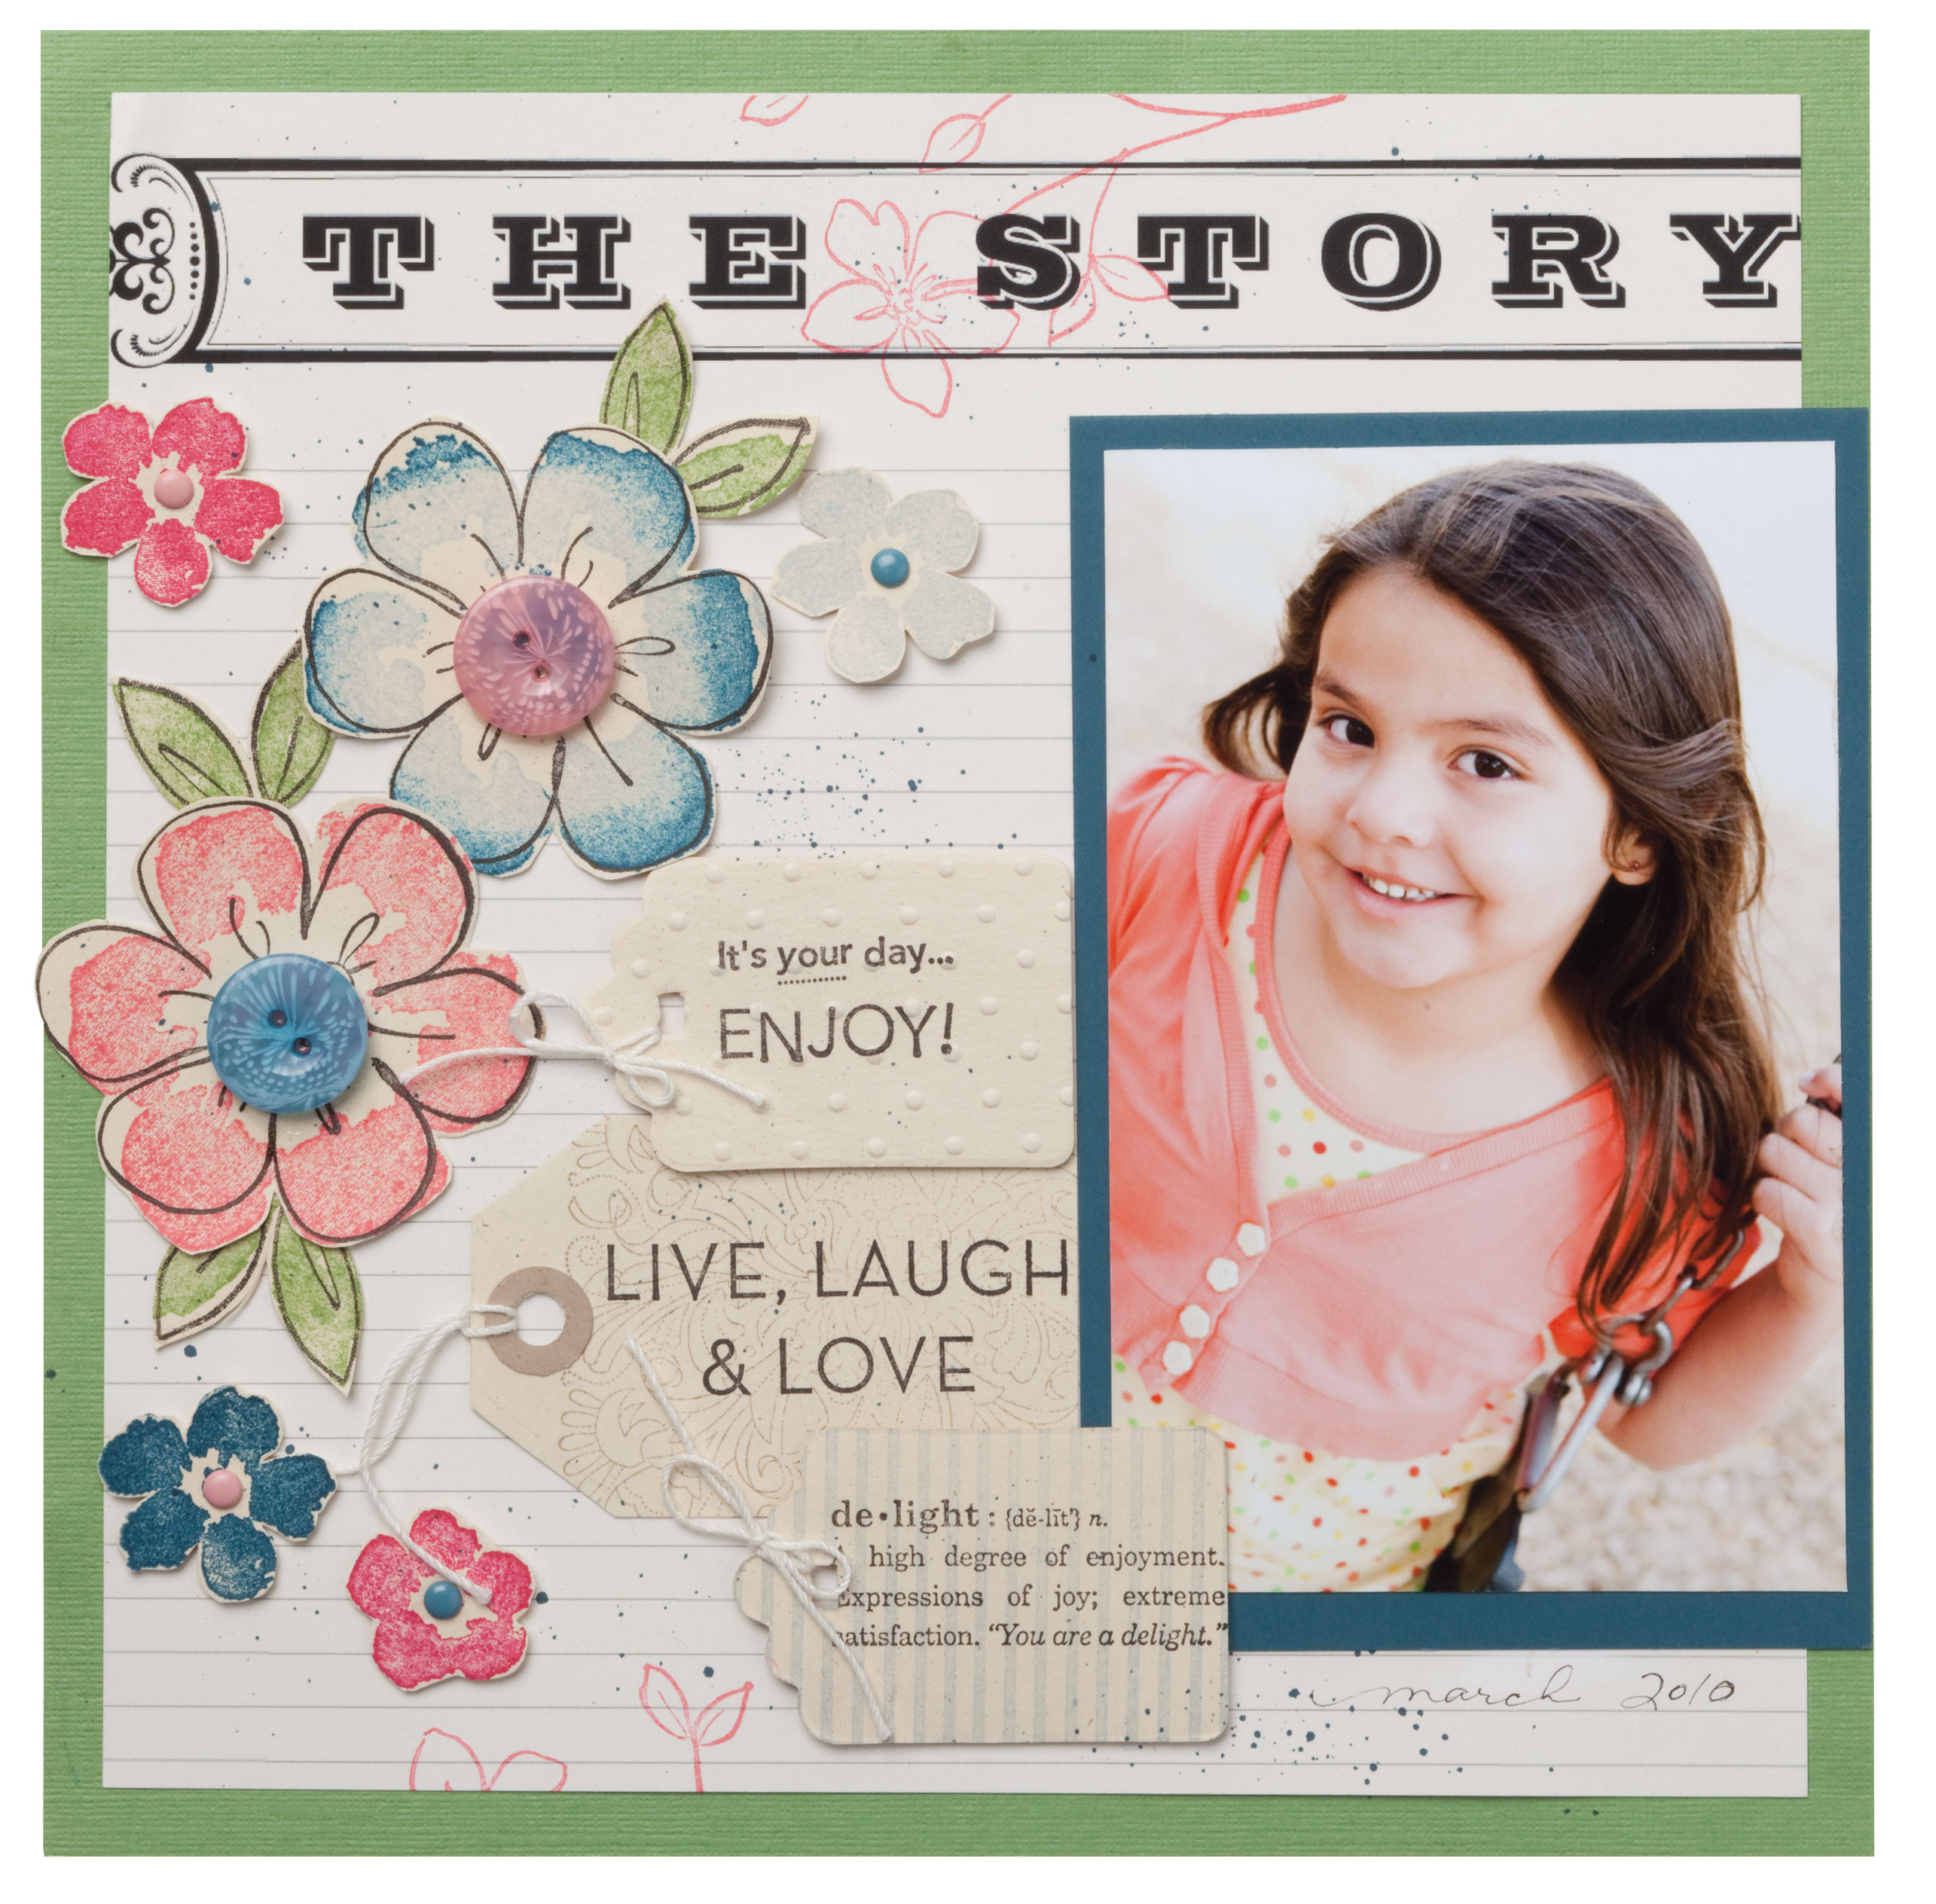 Scrapbooking Rogue Thoughtsans Stamping Studio In The Rogue